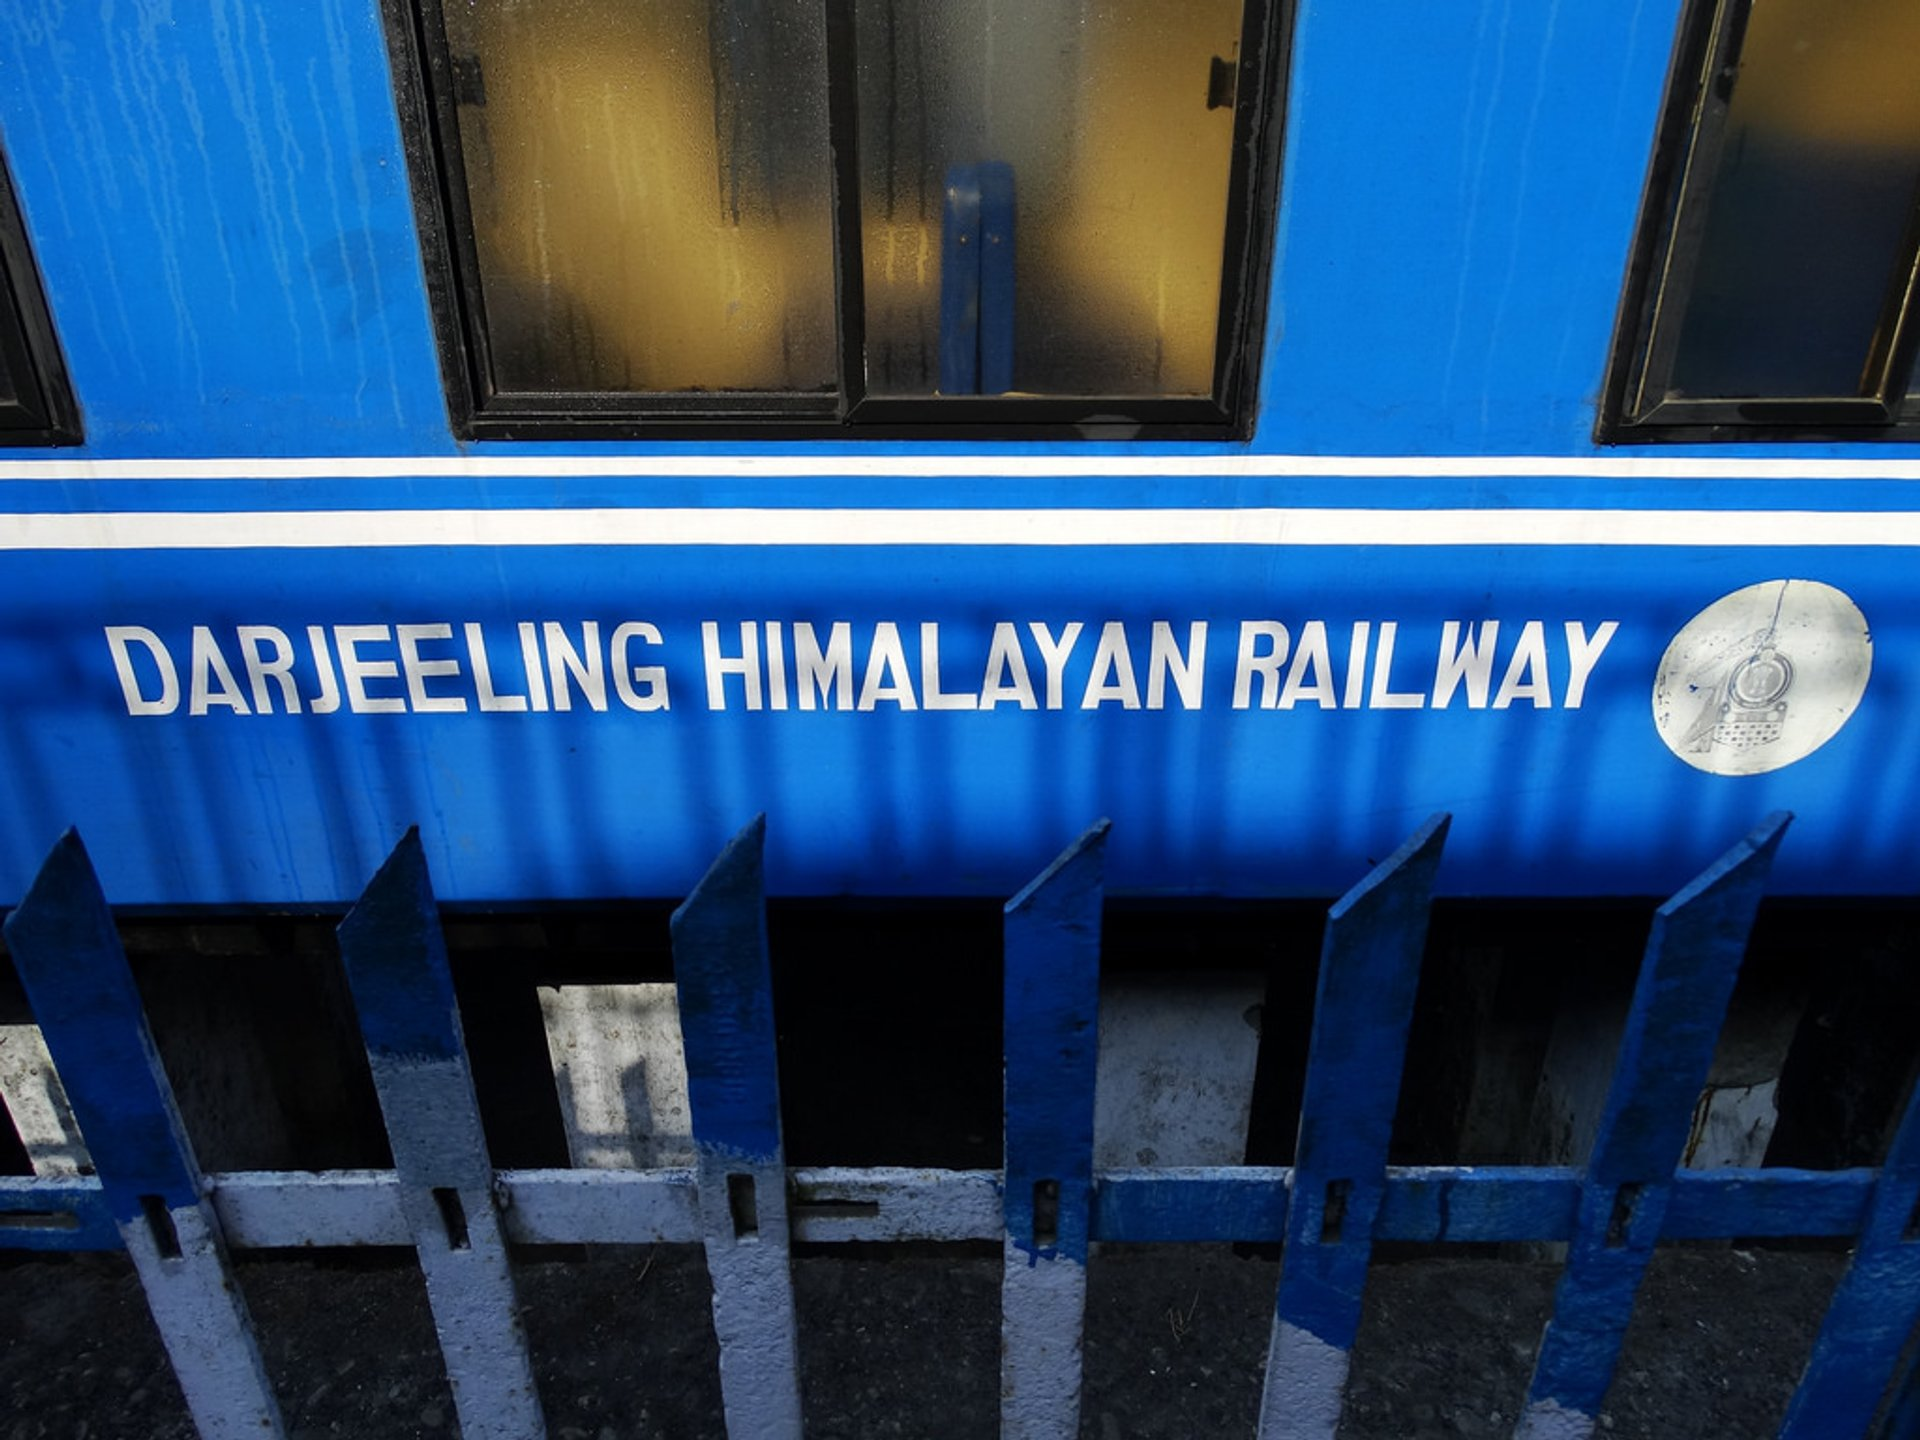 Carriage of Darjeeling Himalayan Railway 2019